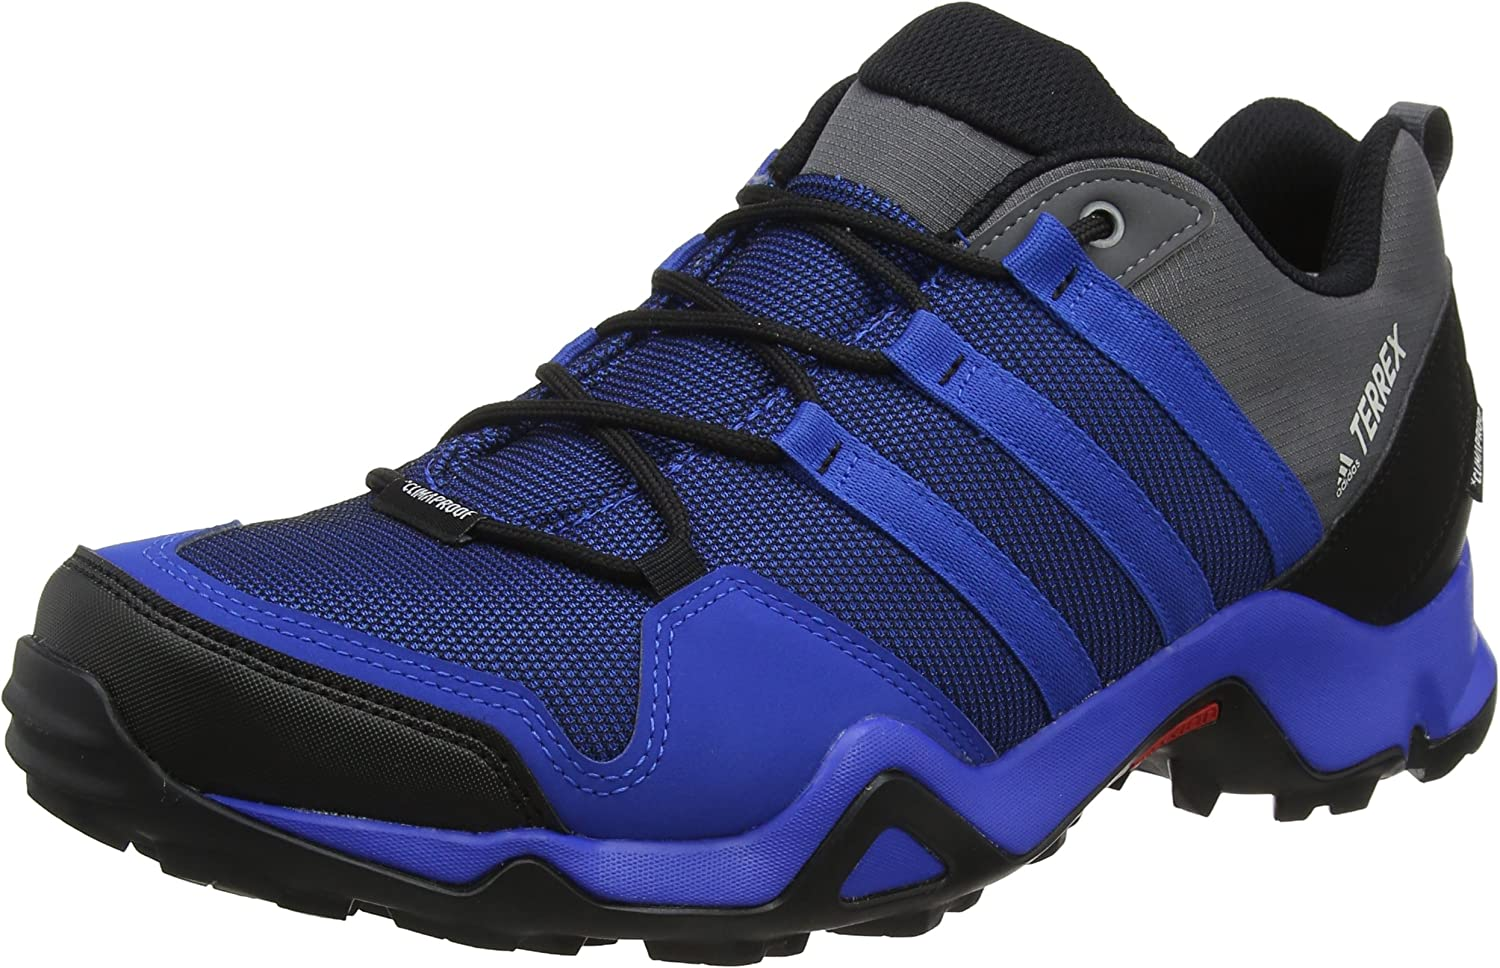 Adidas Men's Terrex Ax2 Cp Low Rise Hiking Boots